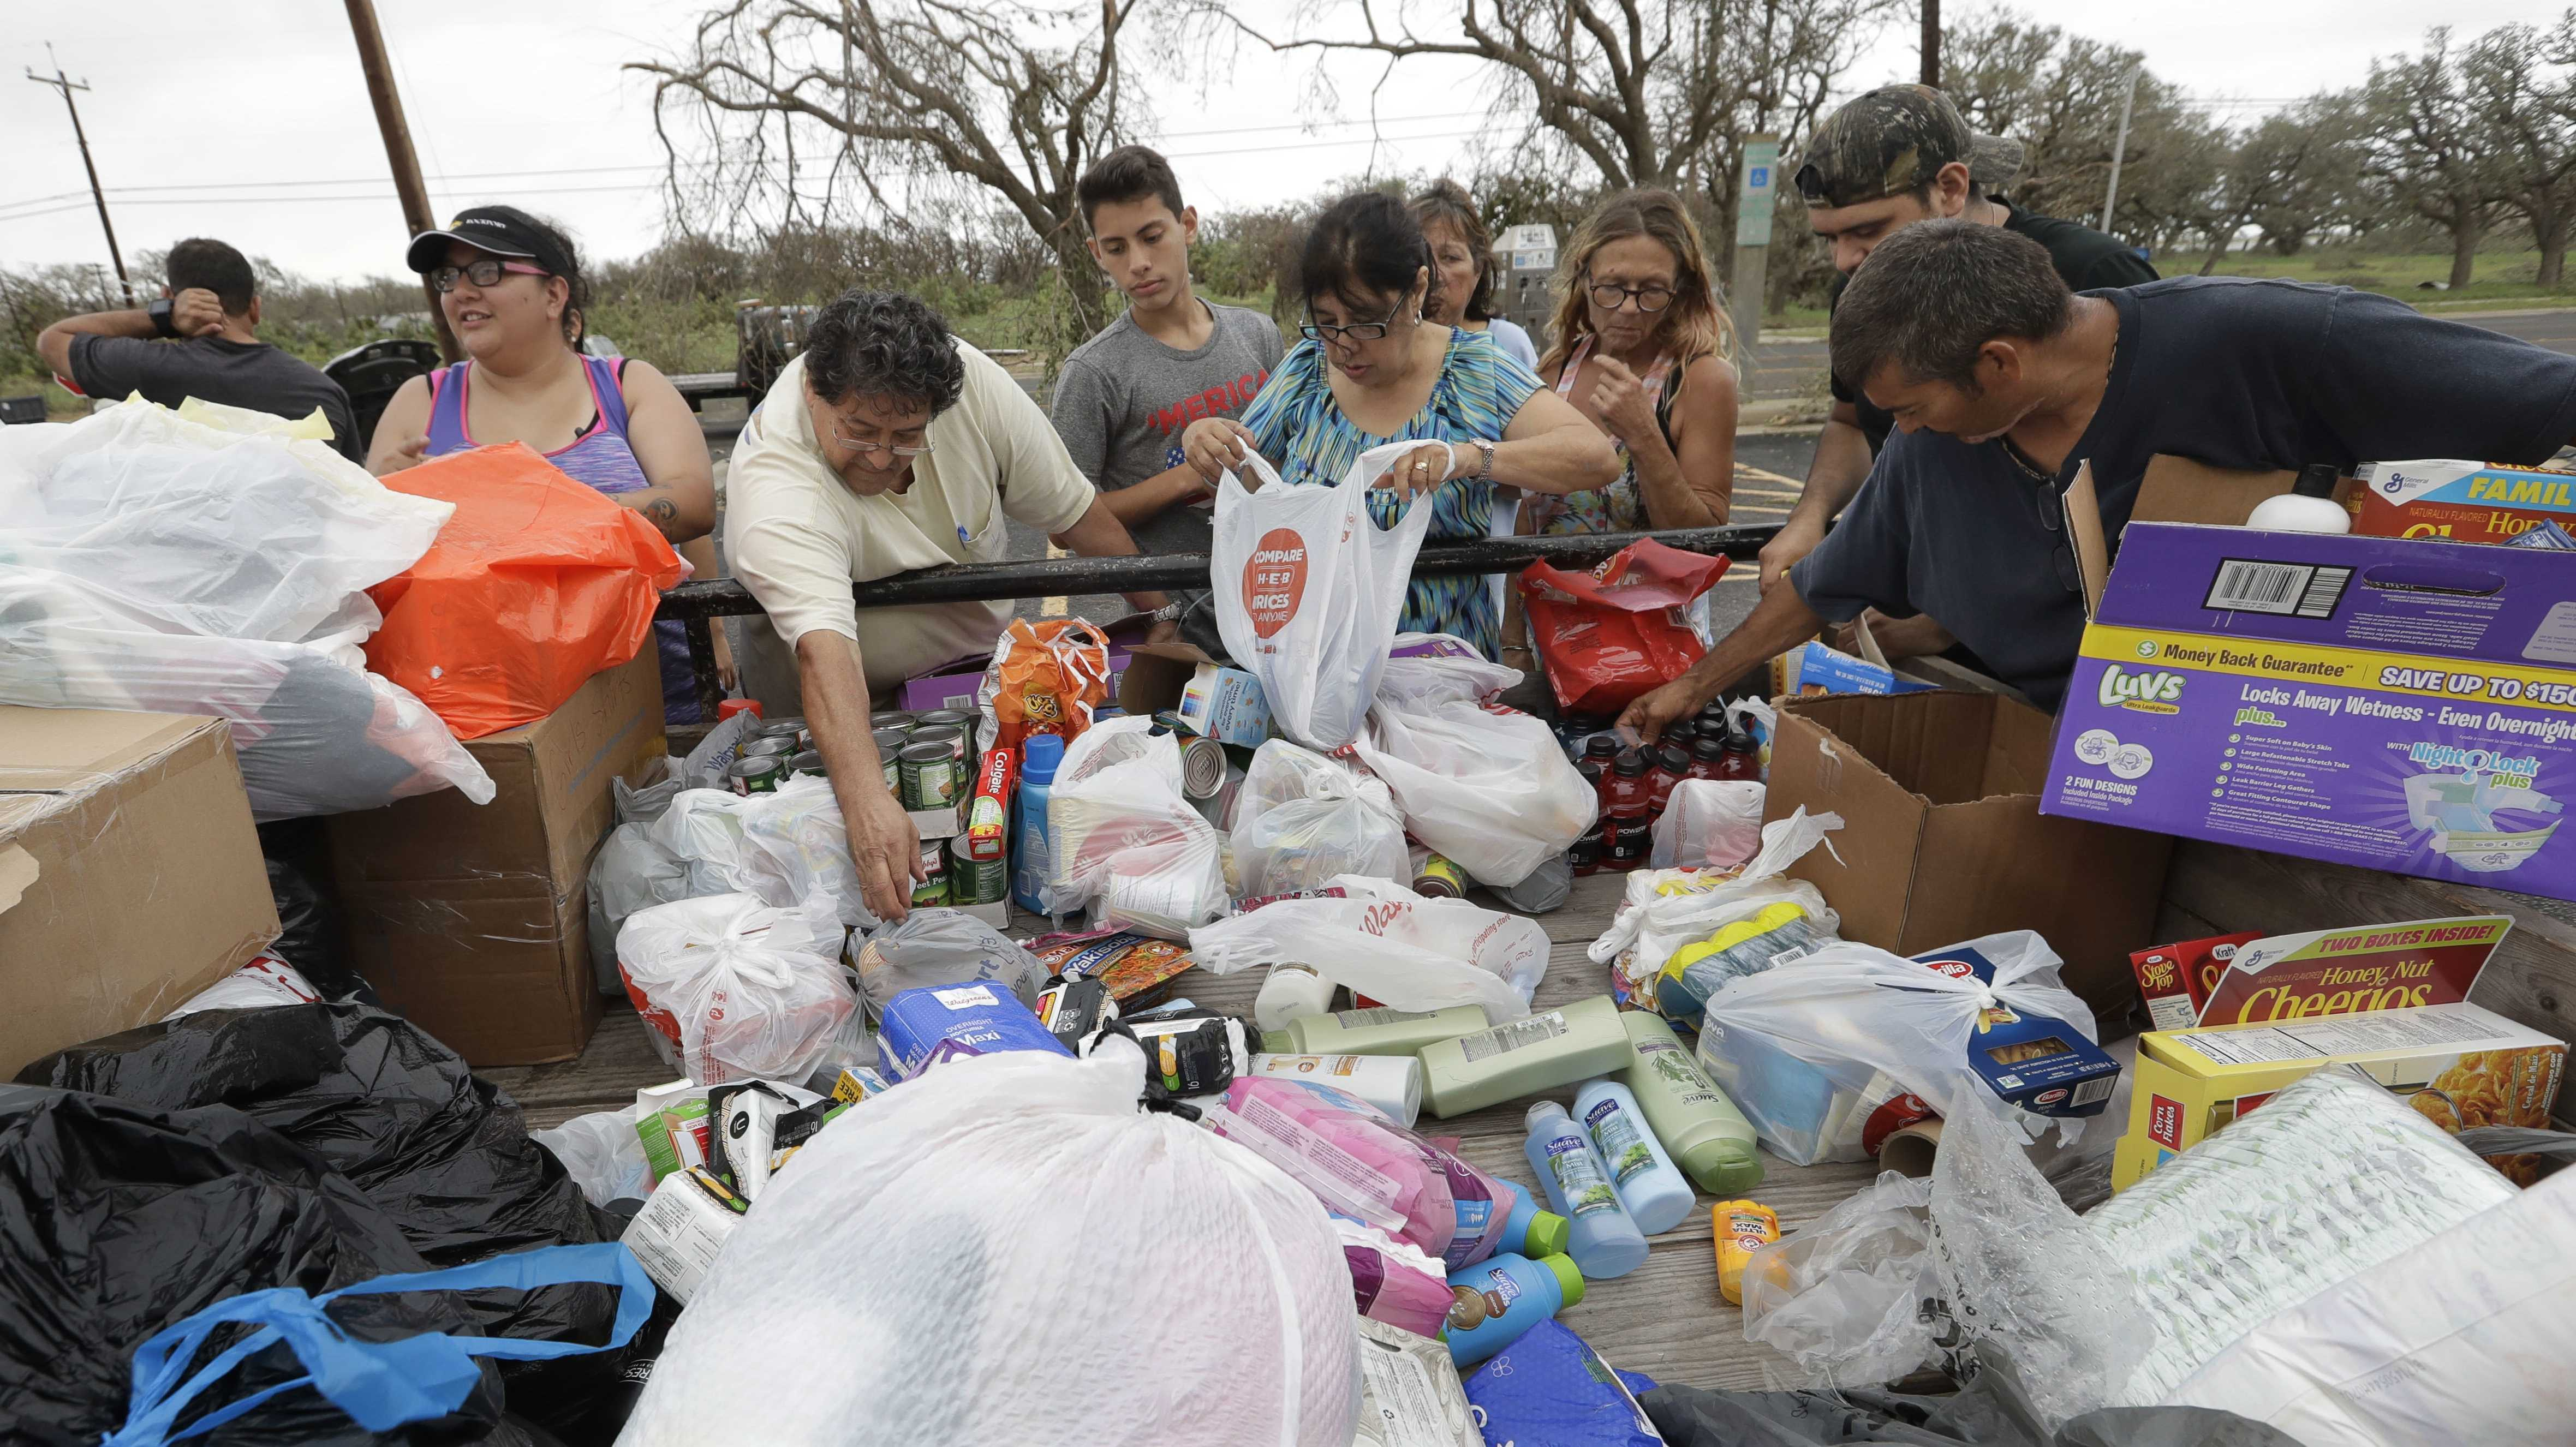 Residents pick through needed items at a make-shift aid station, Sunday, Aug. 27, 2017, in Rockport, Texas. A group from the Texas Rio Grande Valley created station for those in need following Hurricane Harvey.